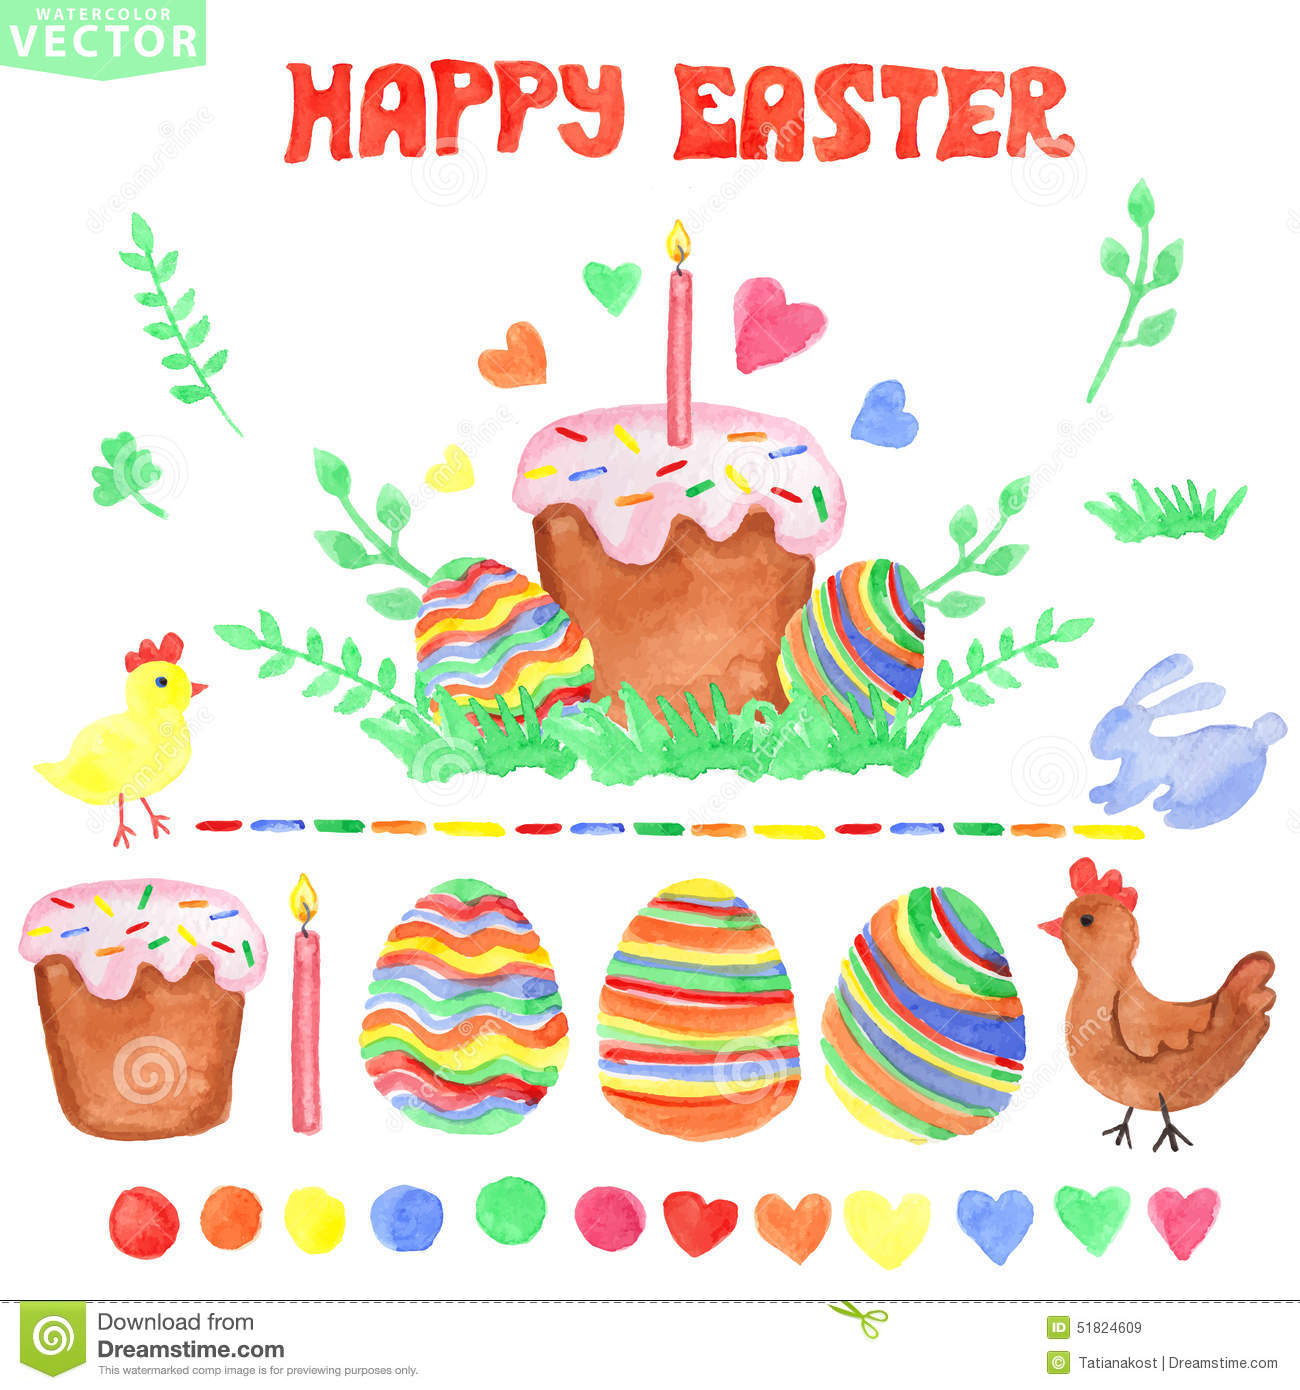 easter decoration clipart - photo #19